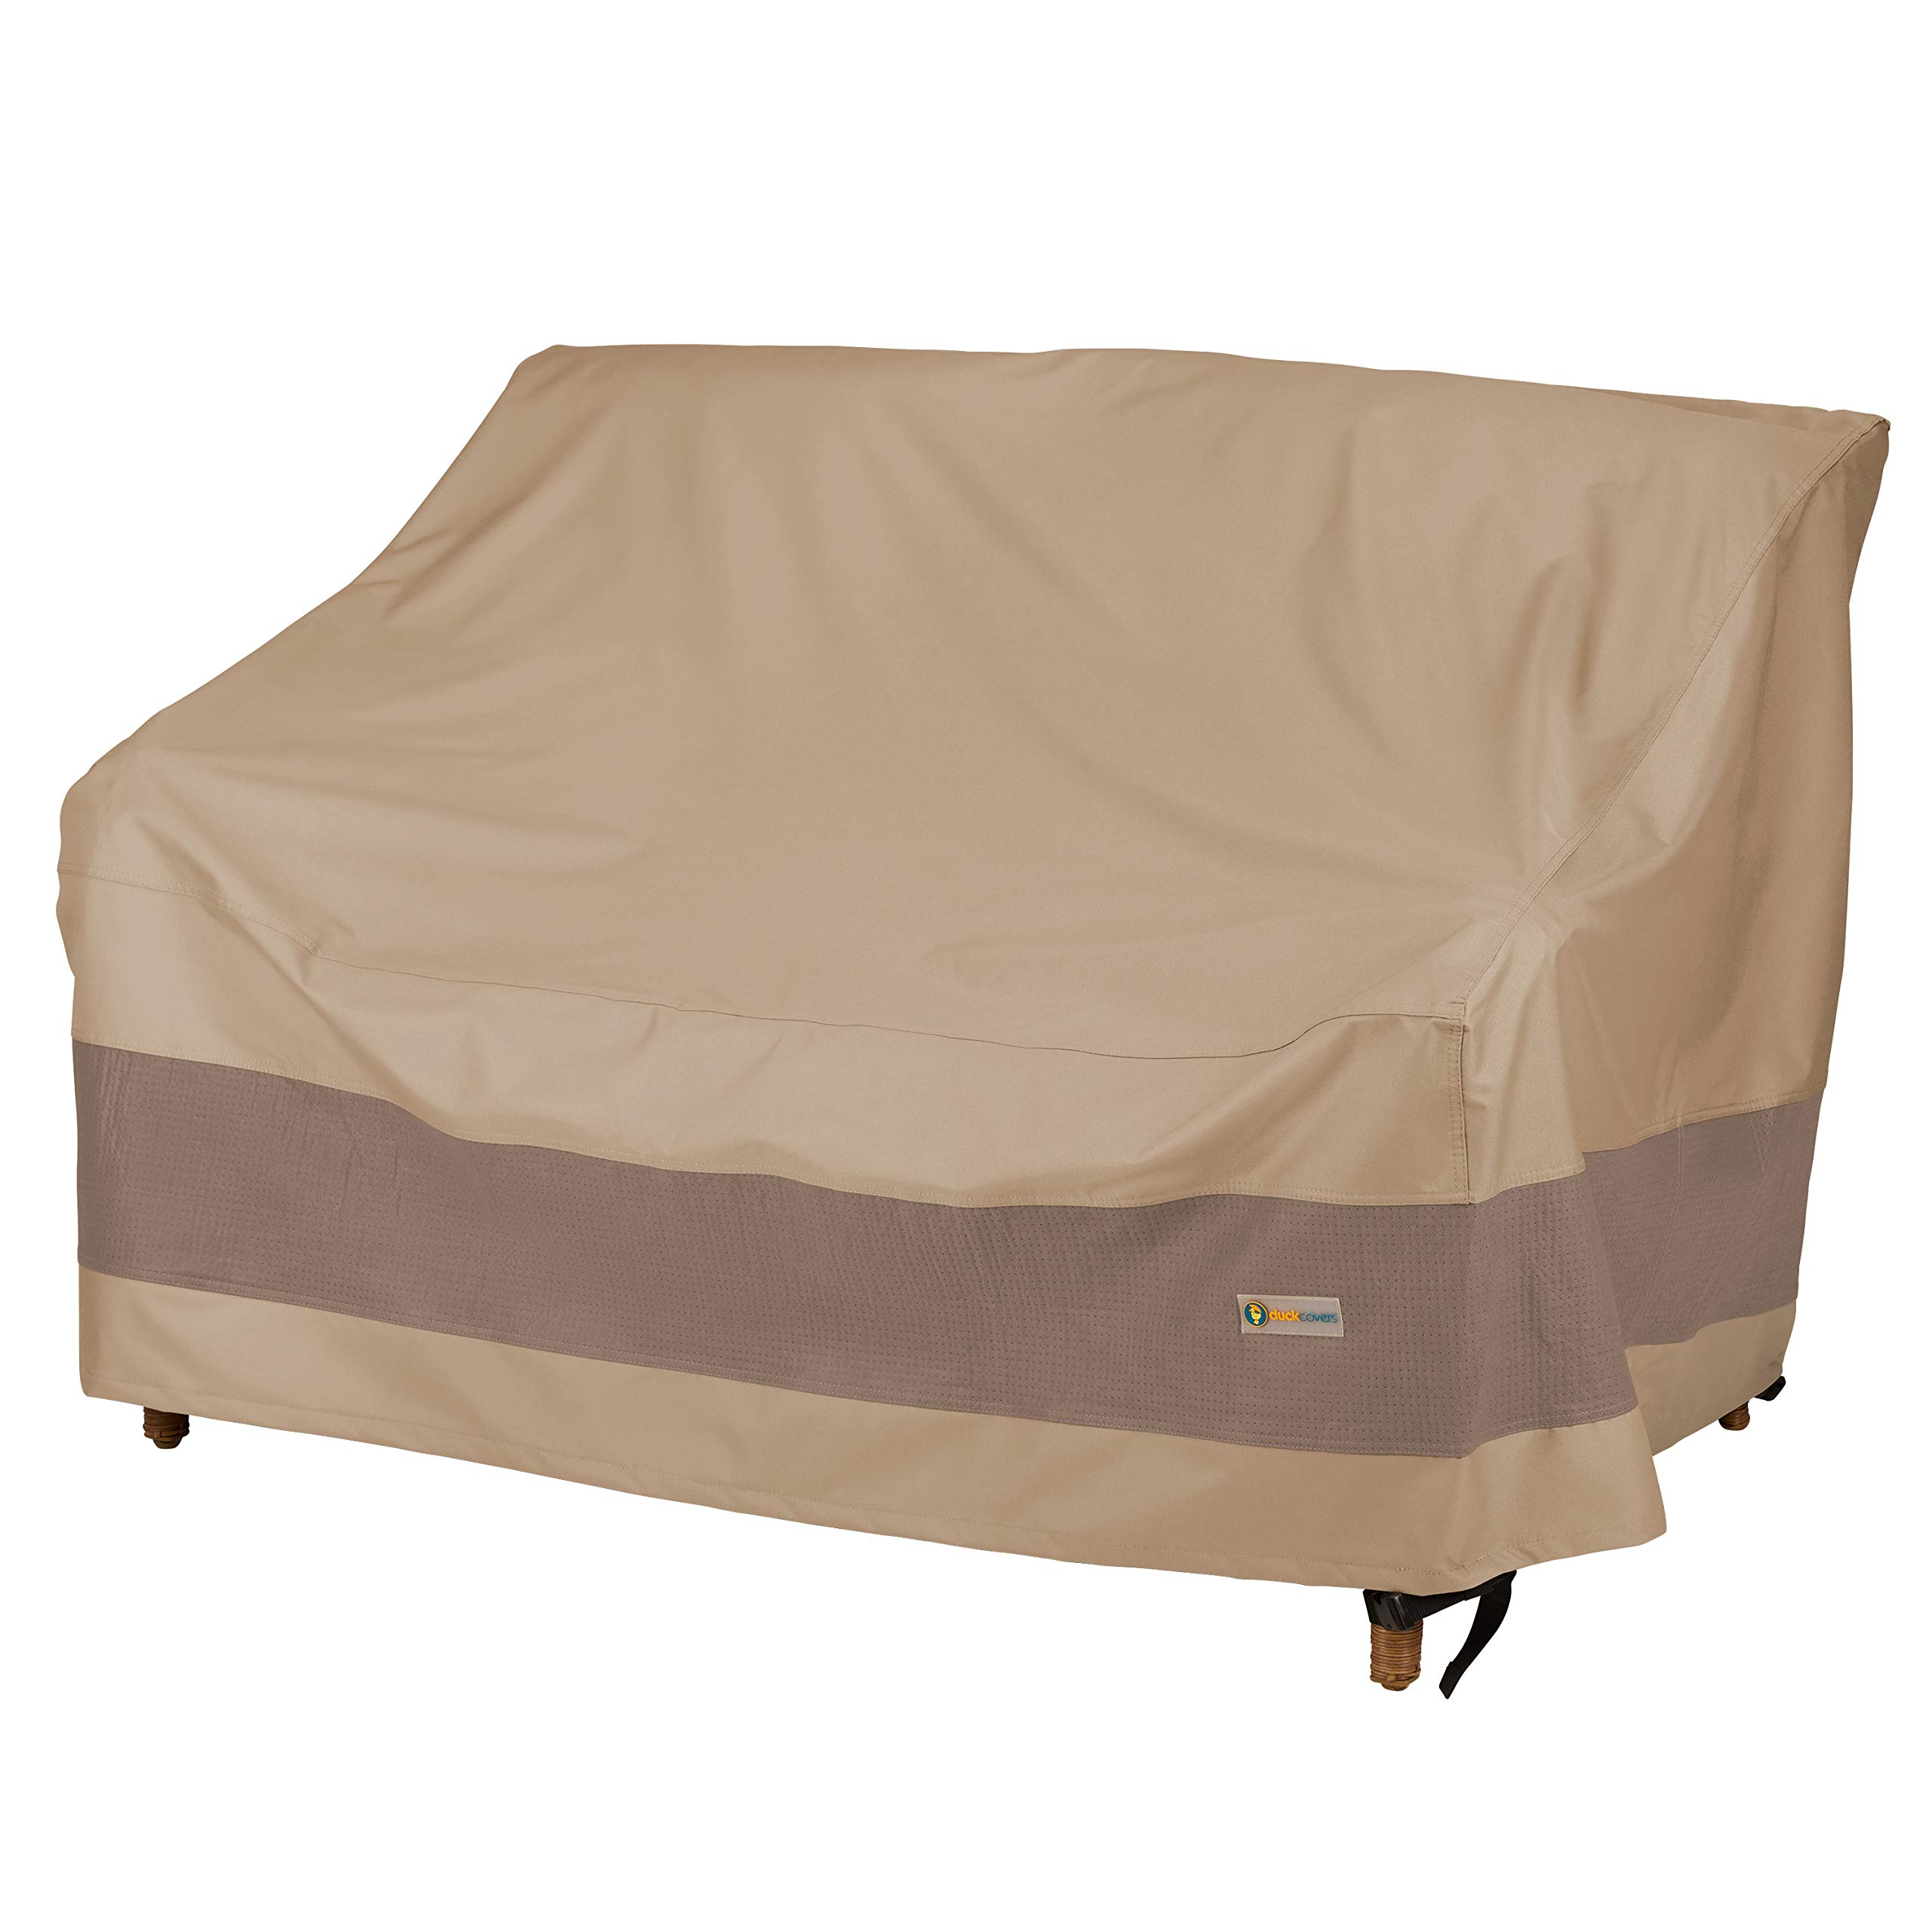 Duck Covers Elegant Patio Loveseat Cover, 54-Inch by Duck Covers